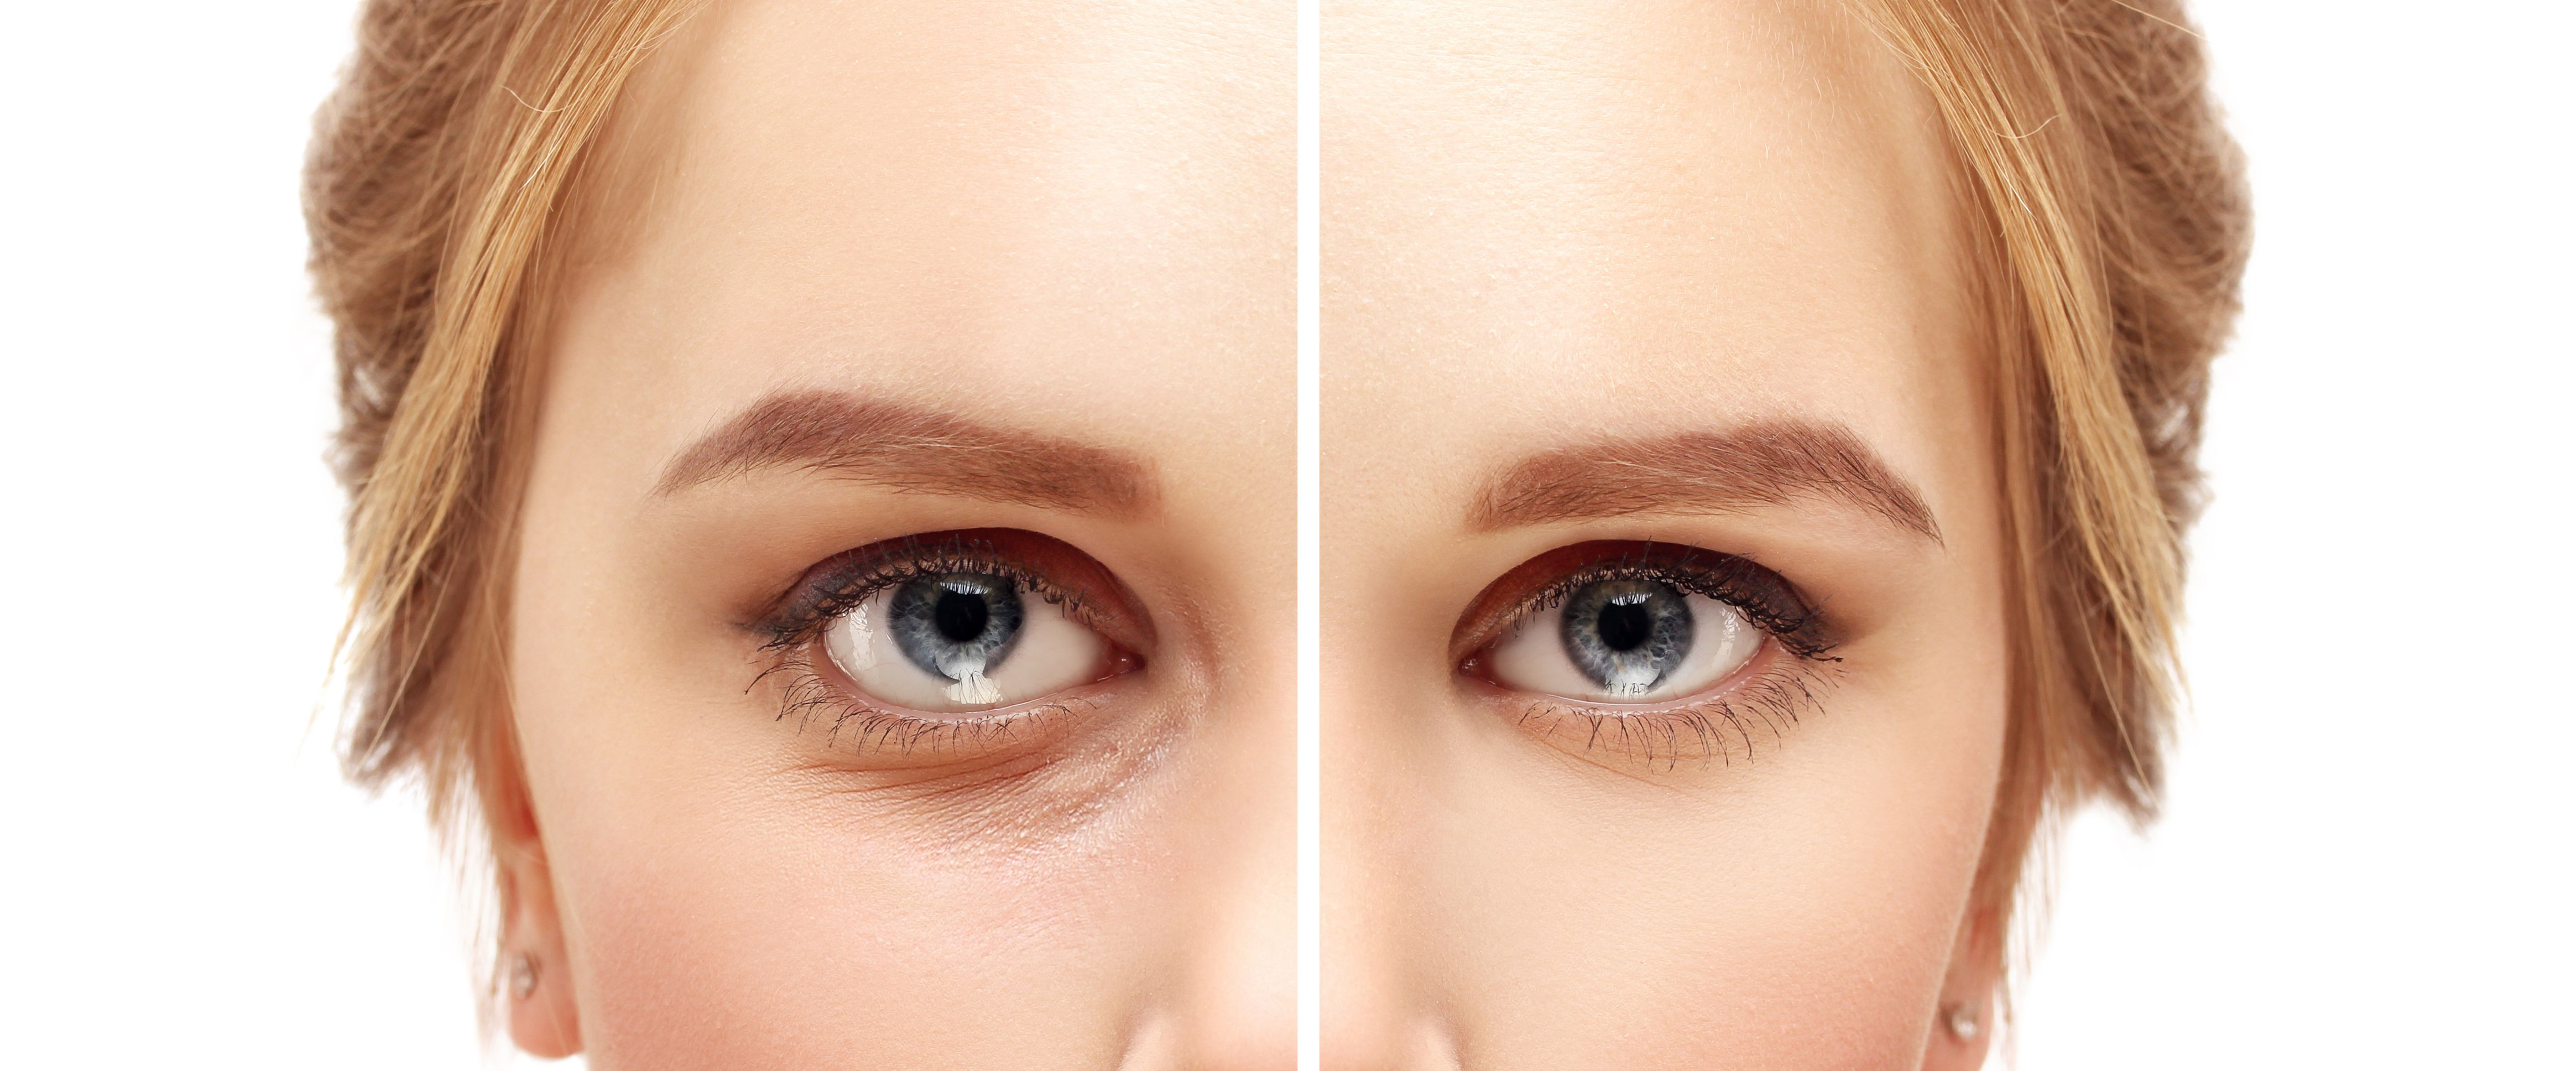 Before and After Blepharoplasty Lower Eyelid Surgery